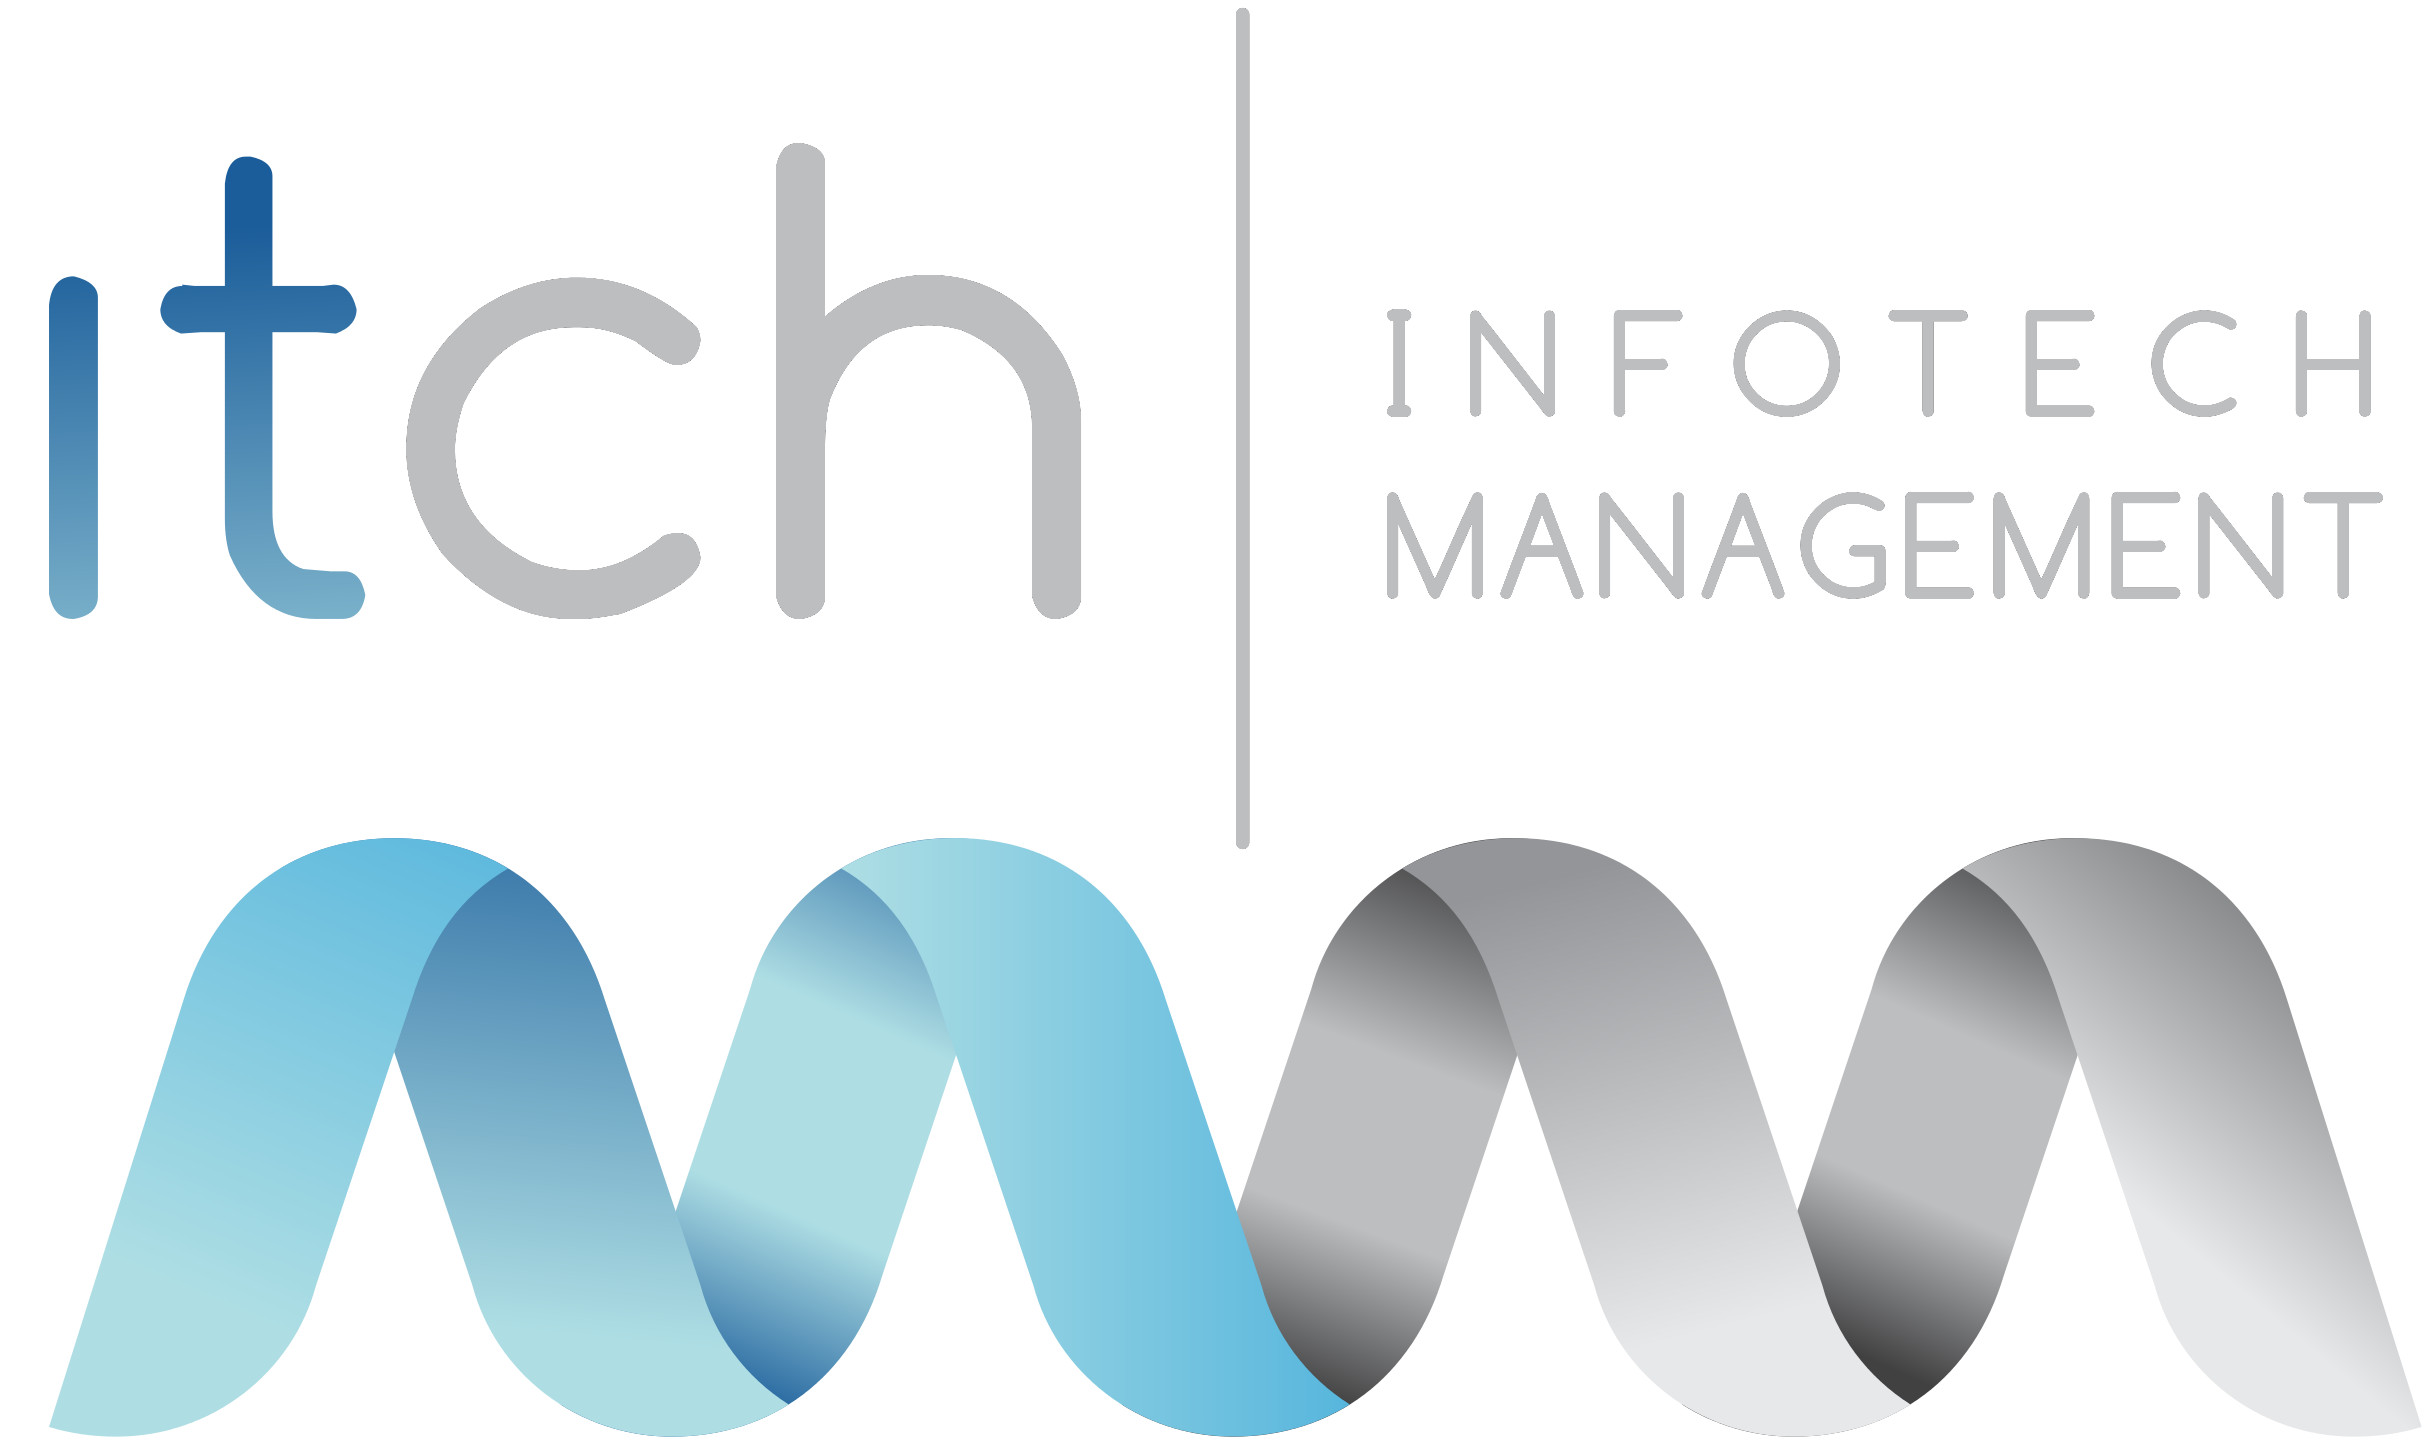 Logo infoteCH management